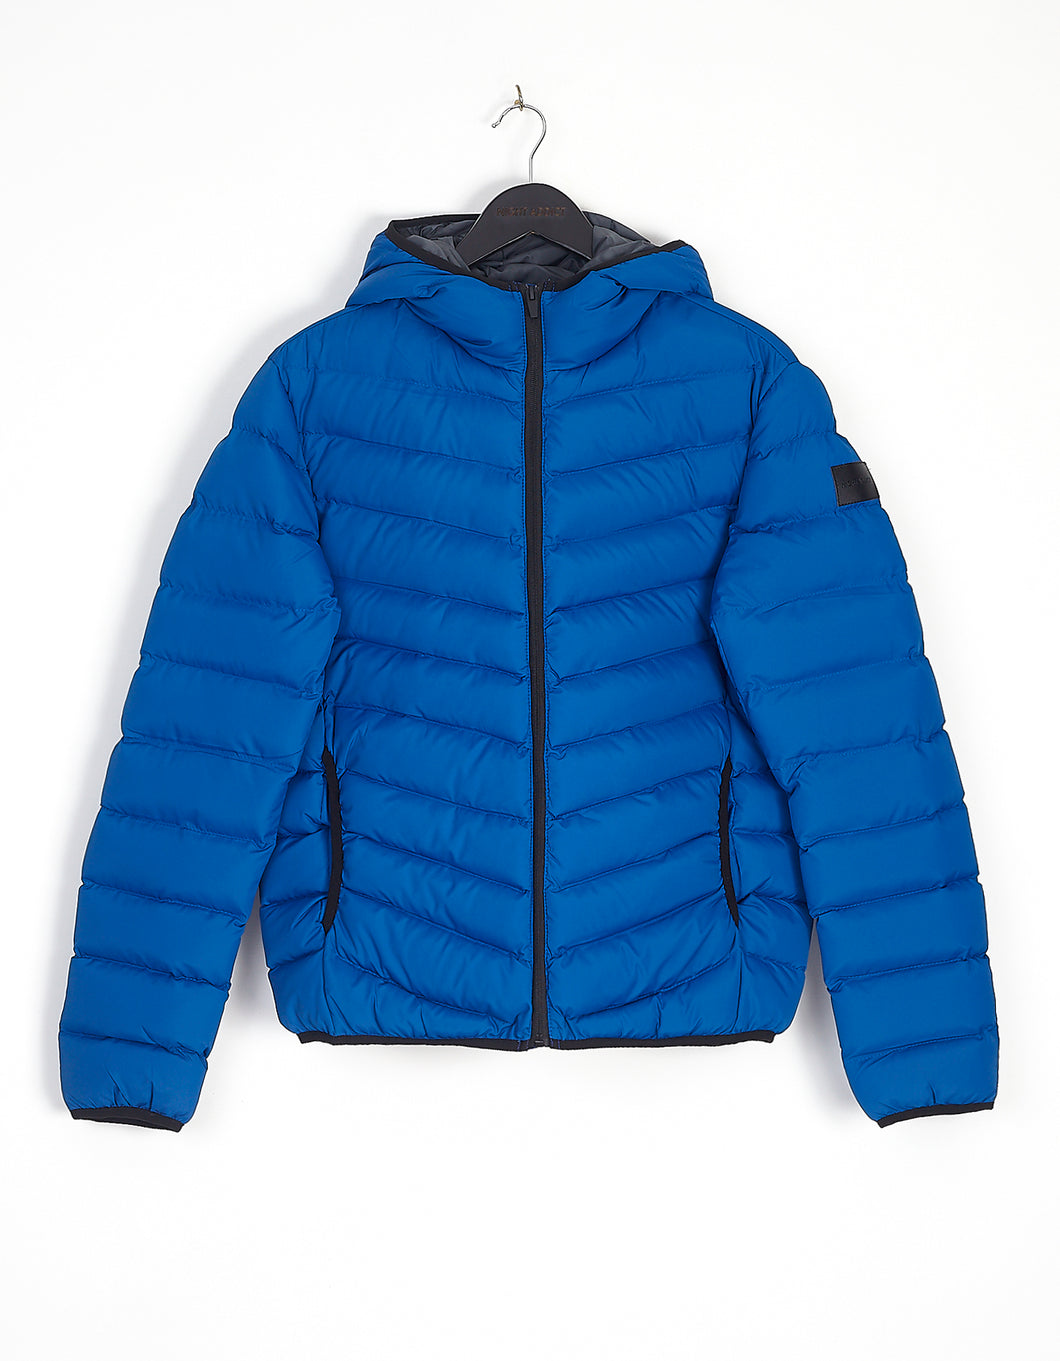 NIGHT ADDICT BLUE BUBBLE JACKET FRONT